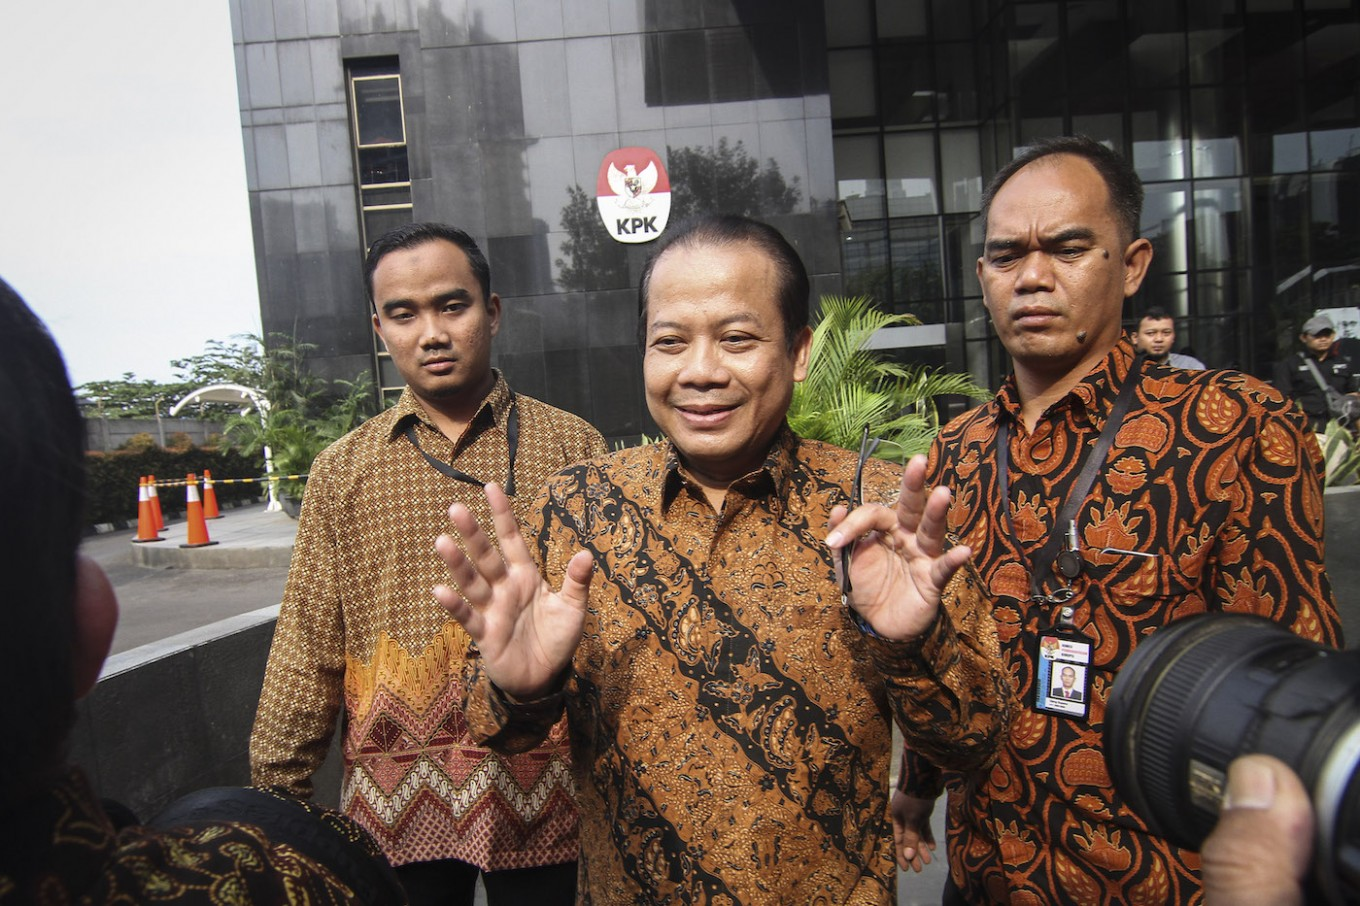 Indonesian House deputy speaker accepted Rp 4.8 billion in bribes: Prosecutor